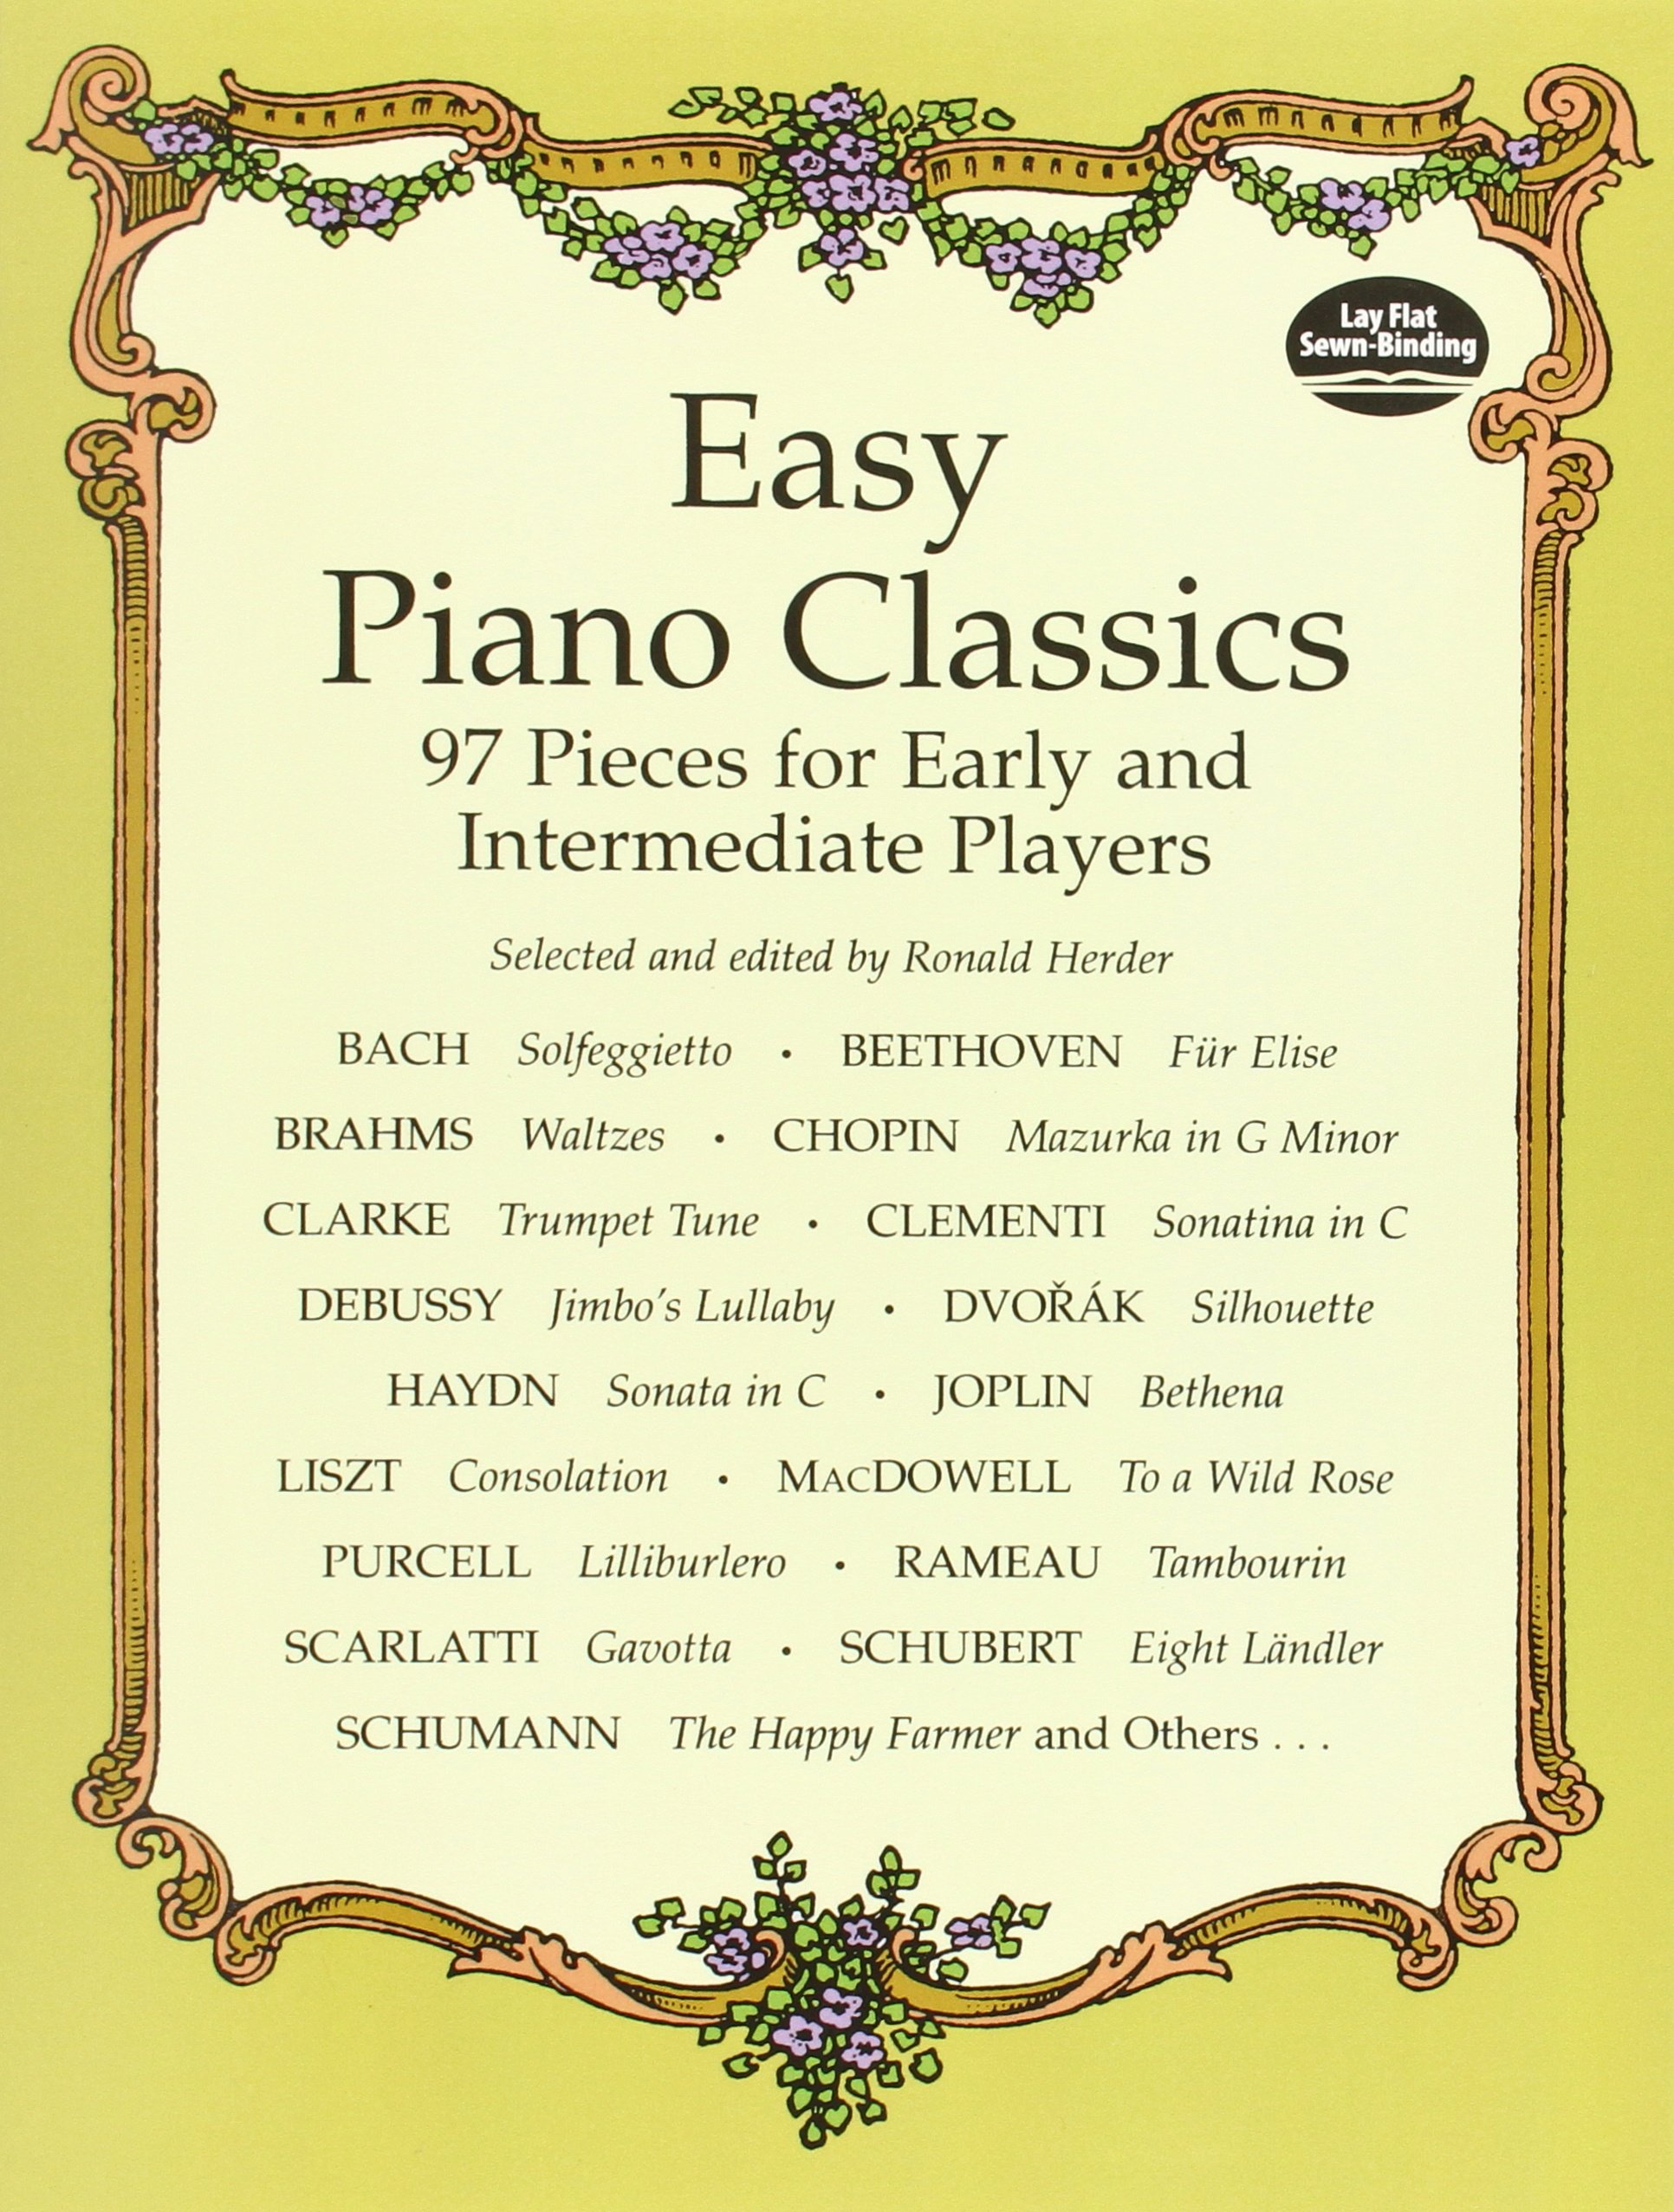 Easy Piano Classics: 97 Pieces for Early and Intermediate